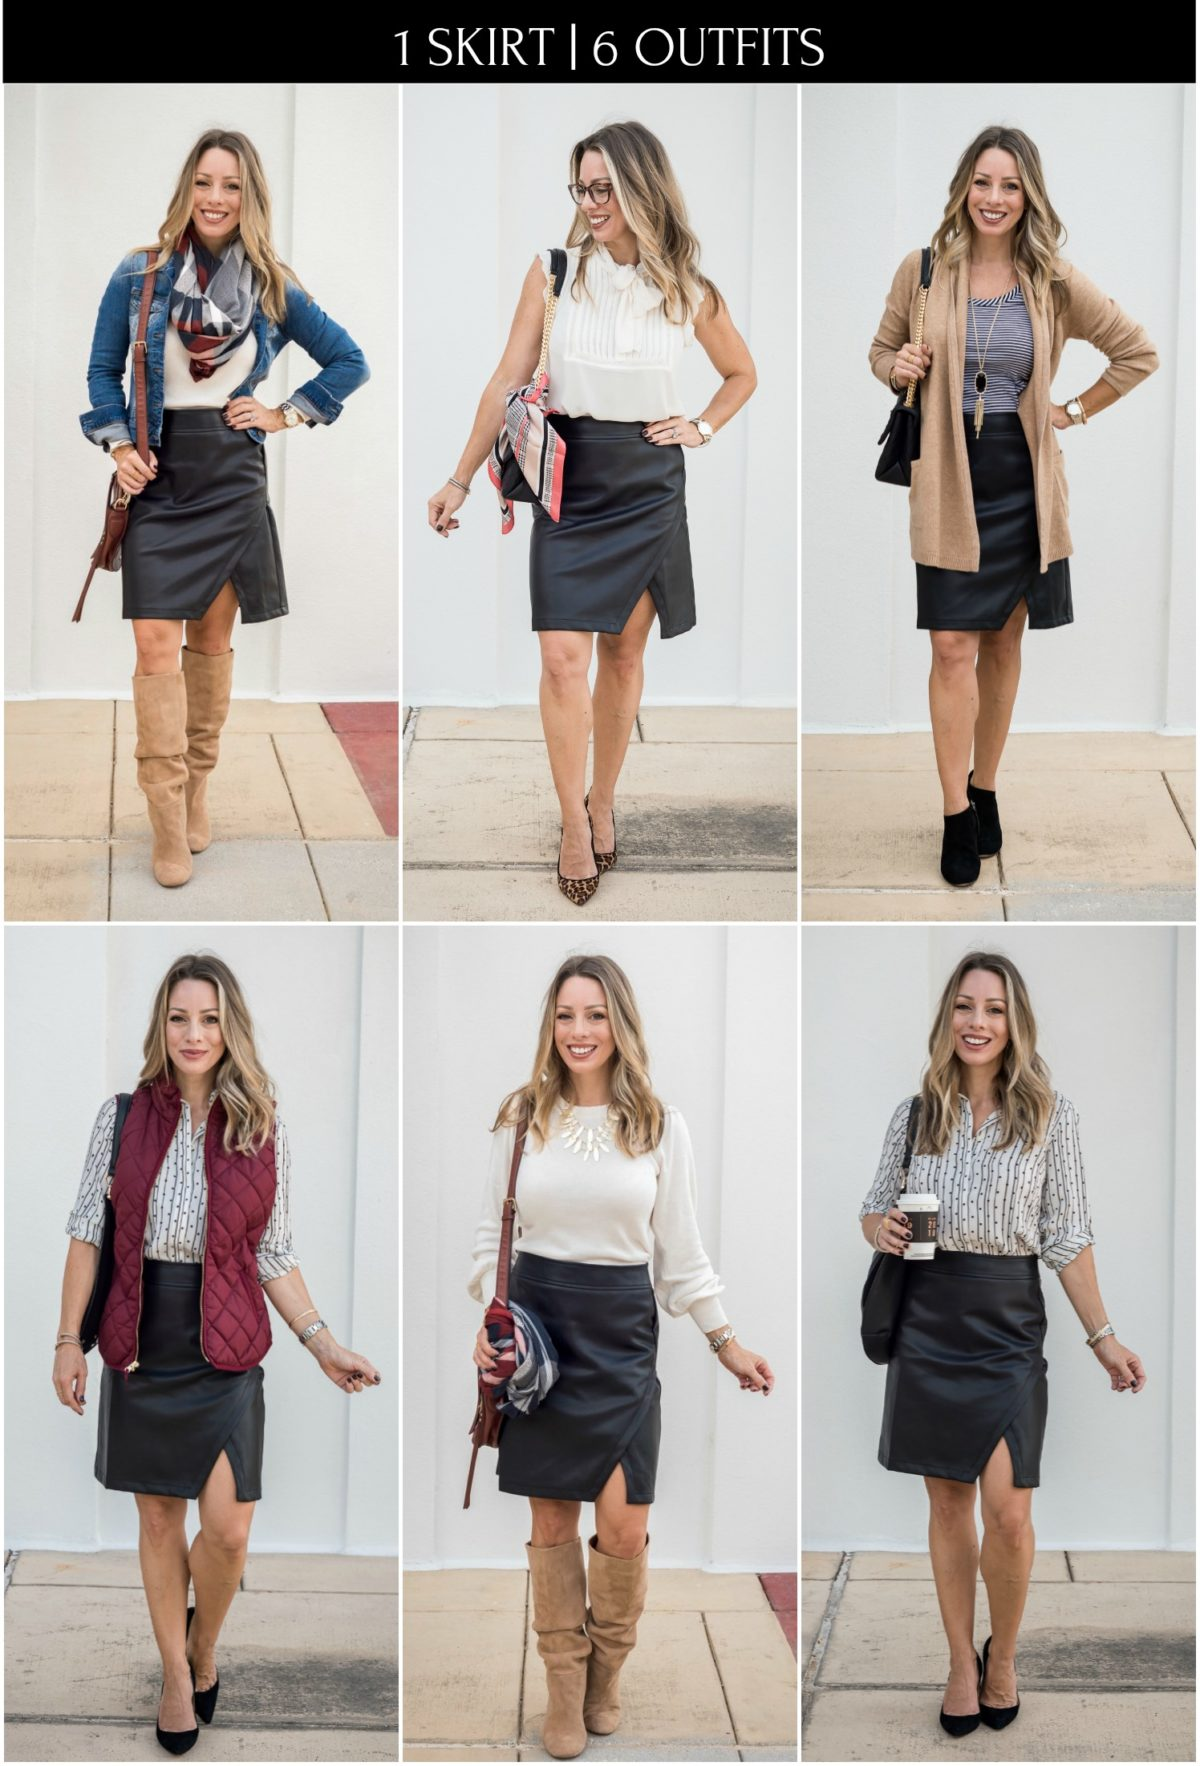 1 Skirt & 6 Outfits